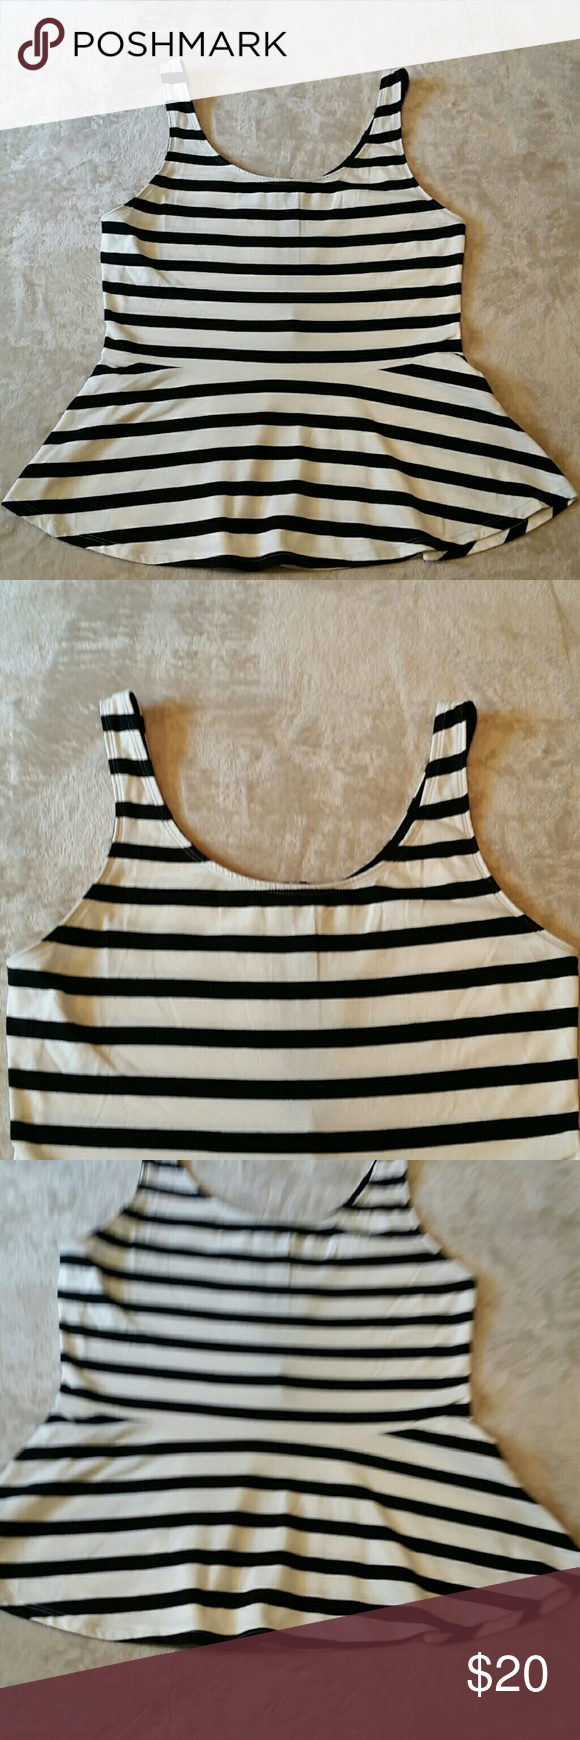 Black & white stretch  Express tank Black and white striped stretch  tank top . Size medium in excellent condition, barely worn.  95% cotton,  5% spandex. express  Tops Tank Tops